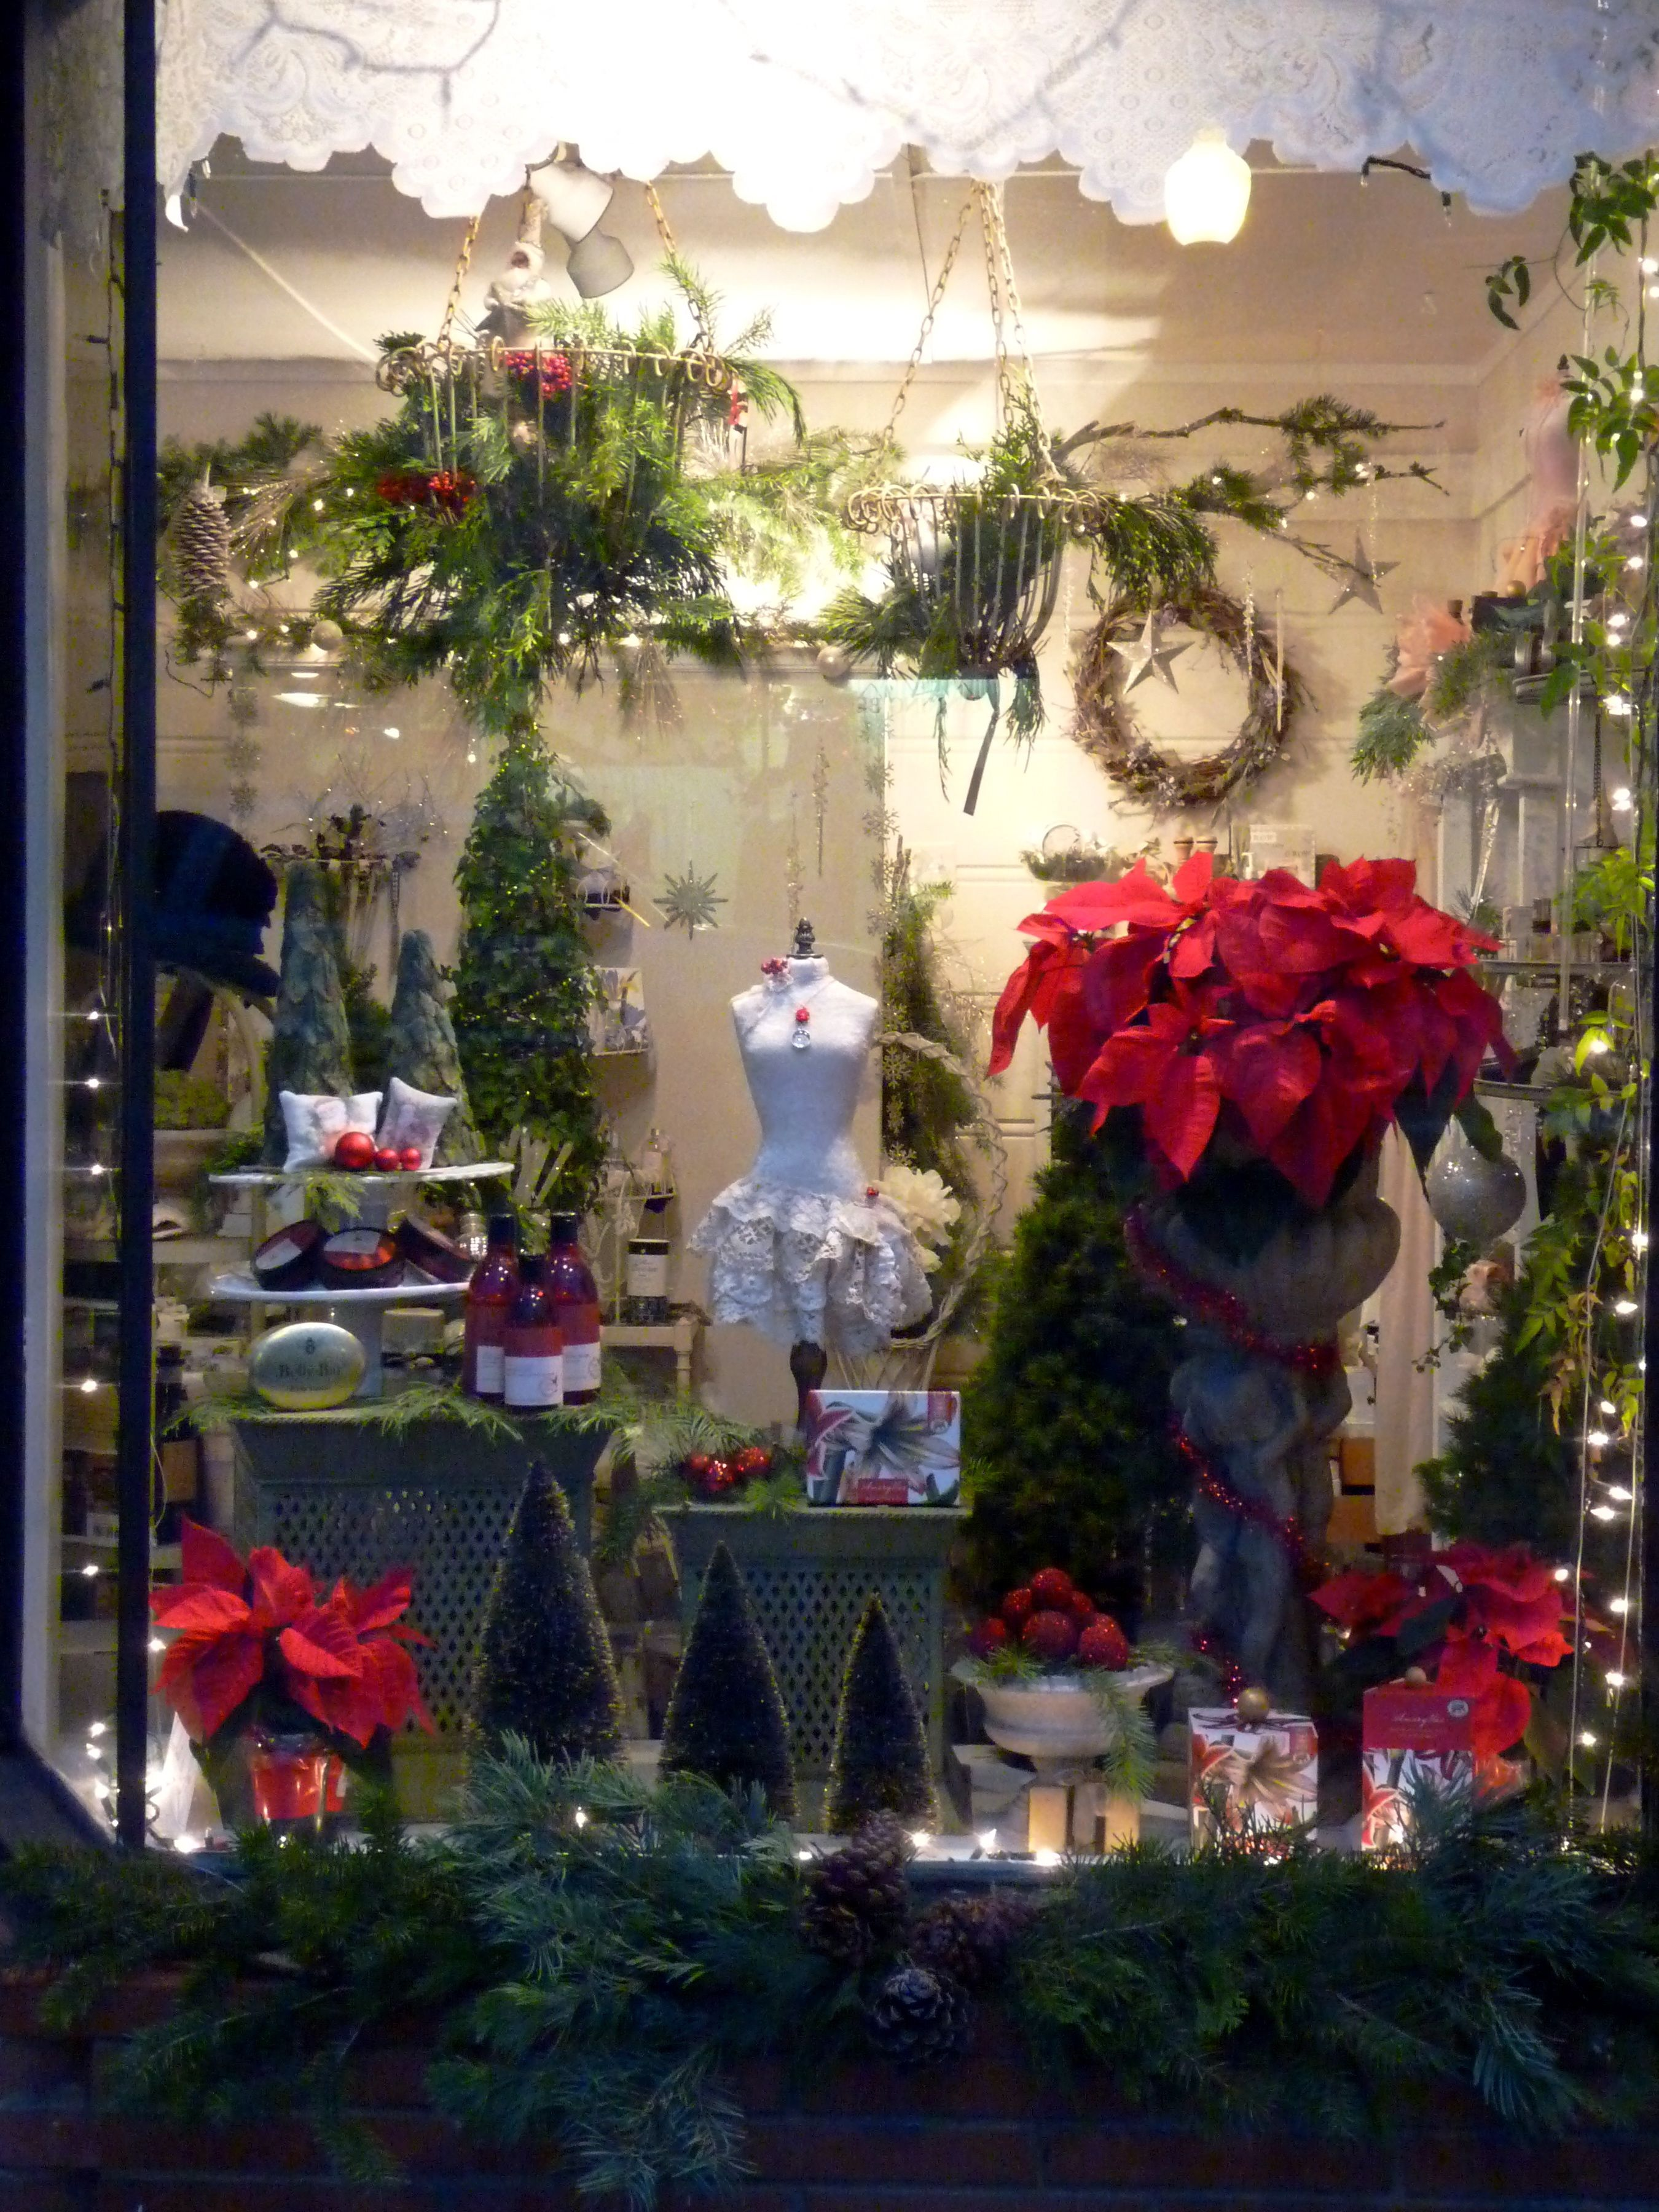 Emily S Garden Holiday Store Front Window Display Retail